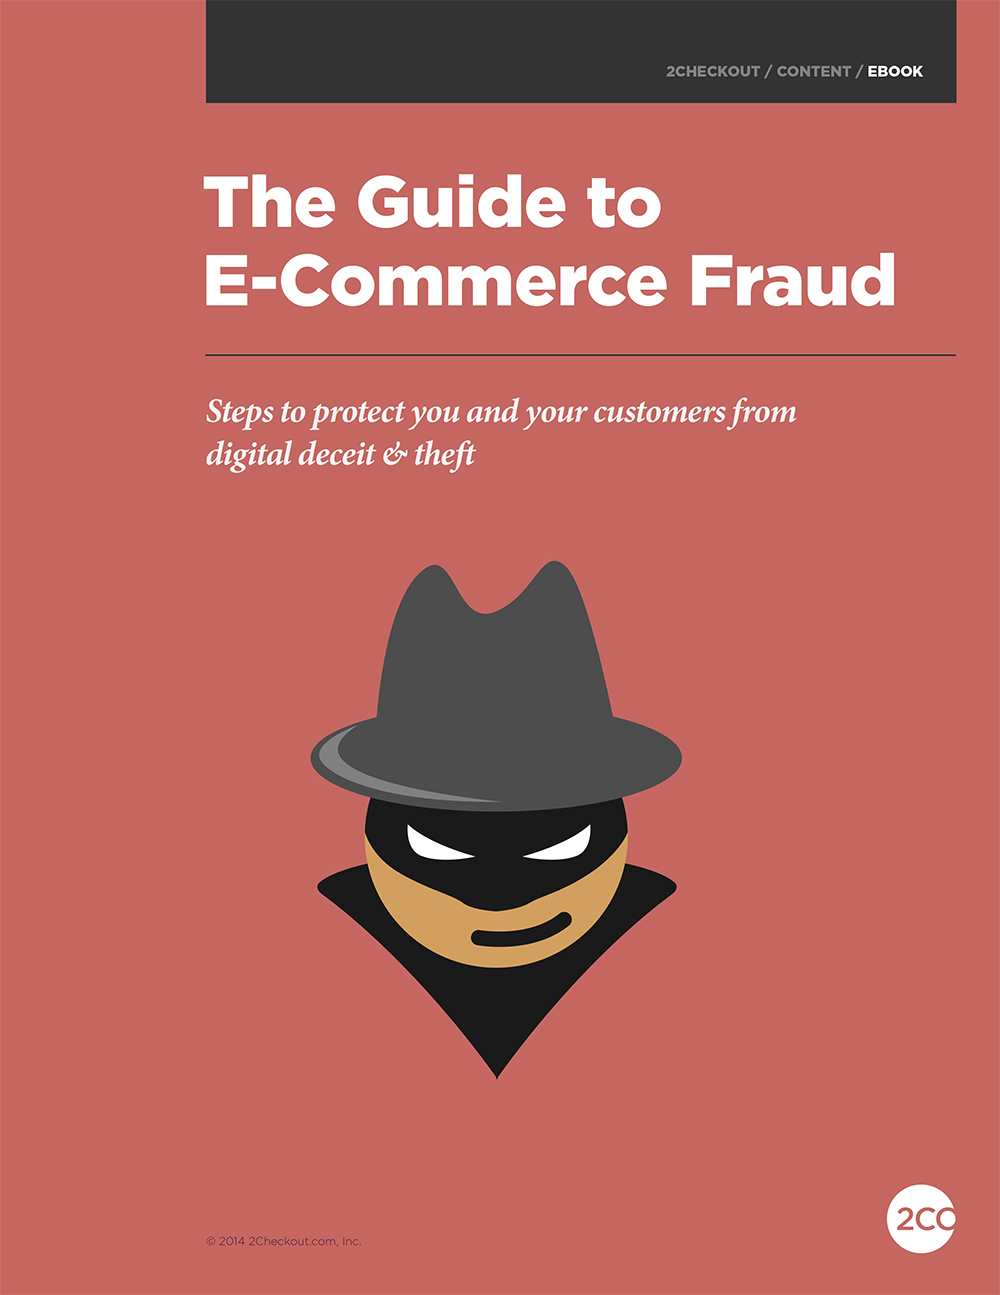 The Guide to E-Commerce Fraud